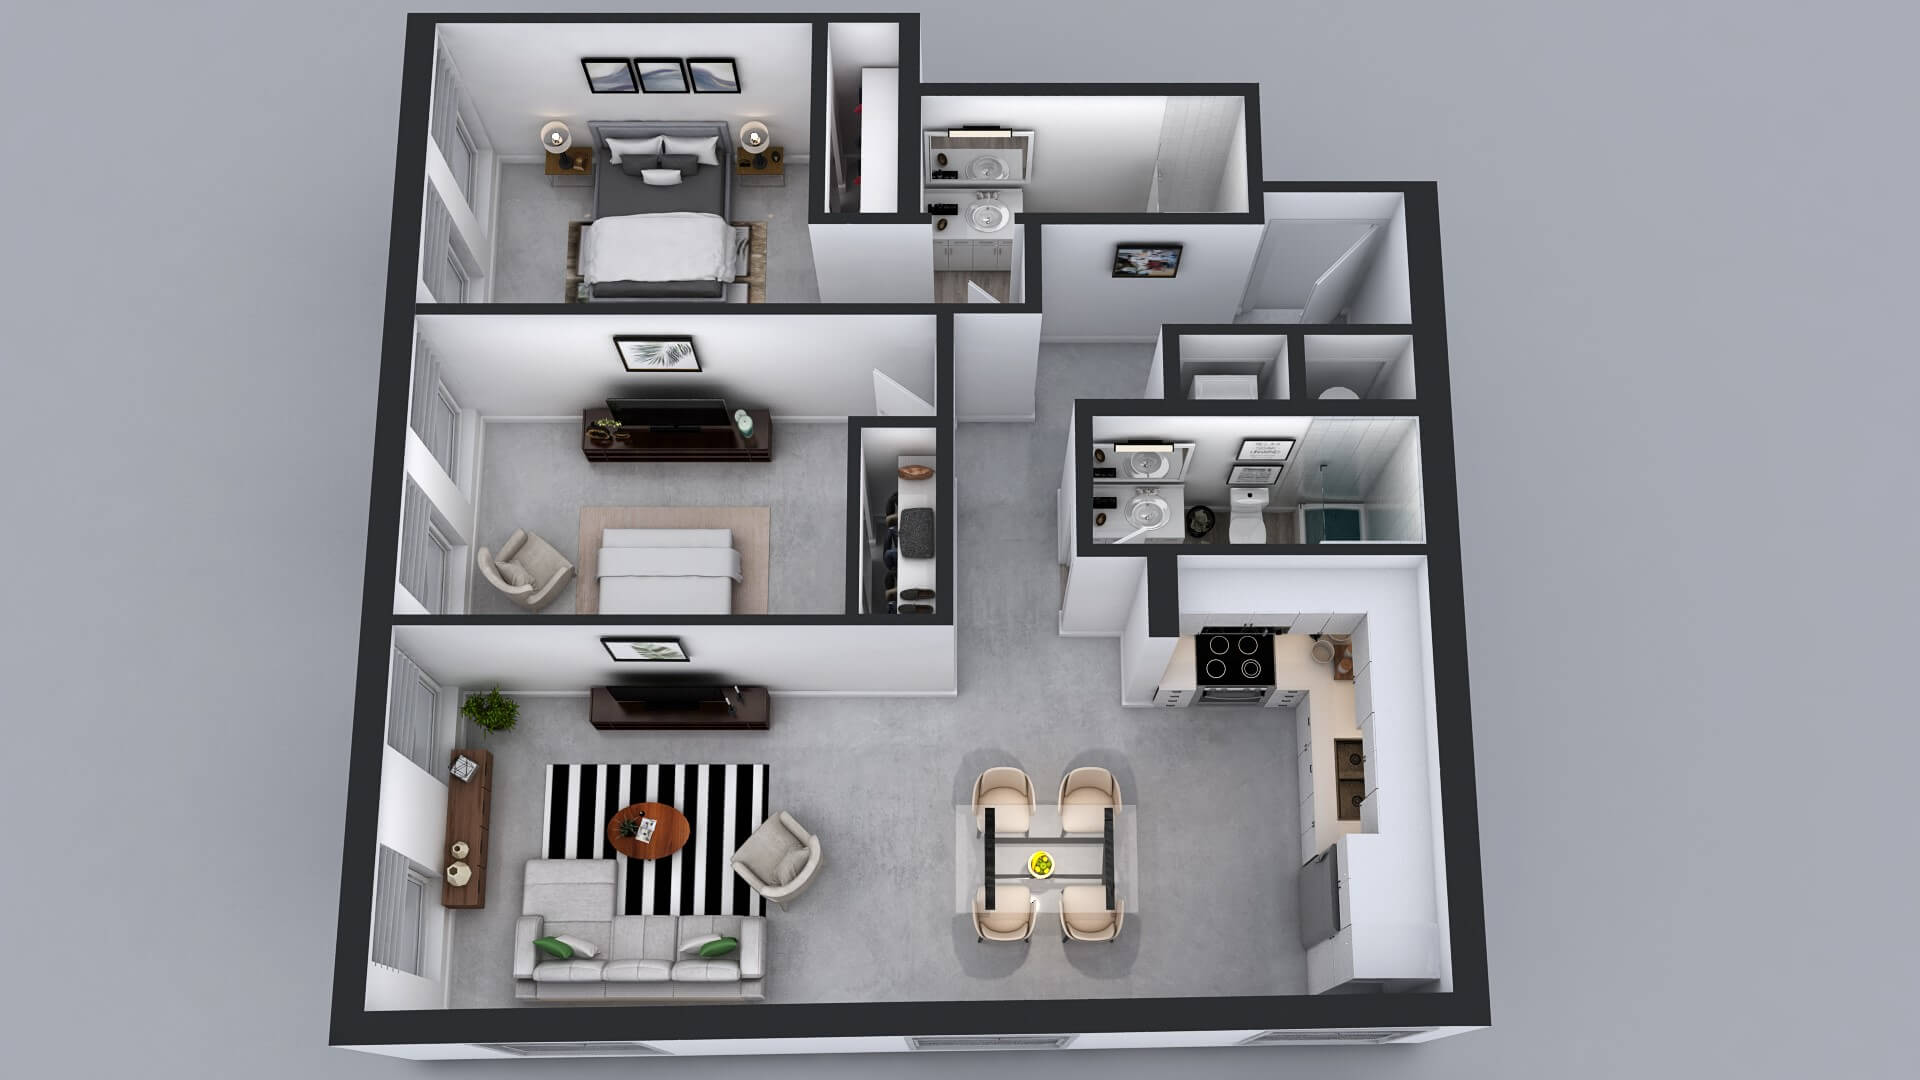 B8 Floor Plan - 2 Bed 2 Bath